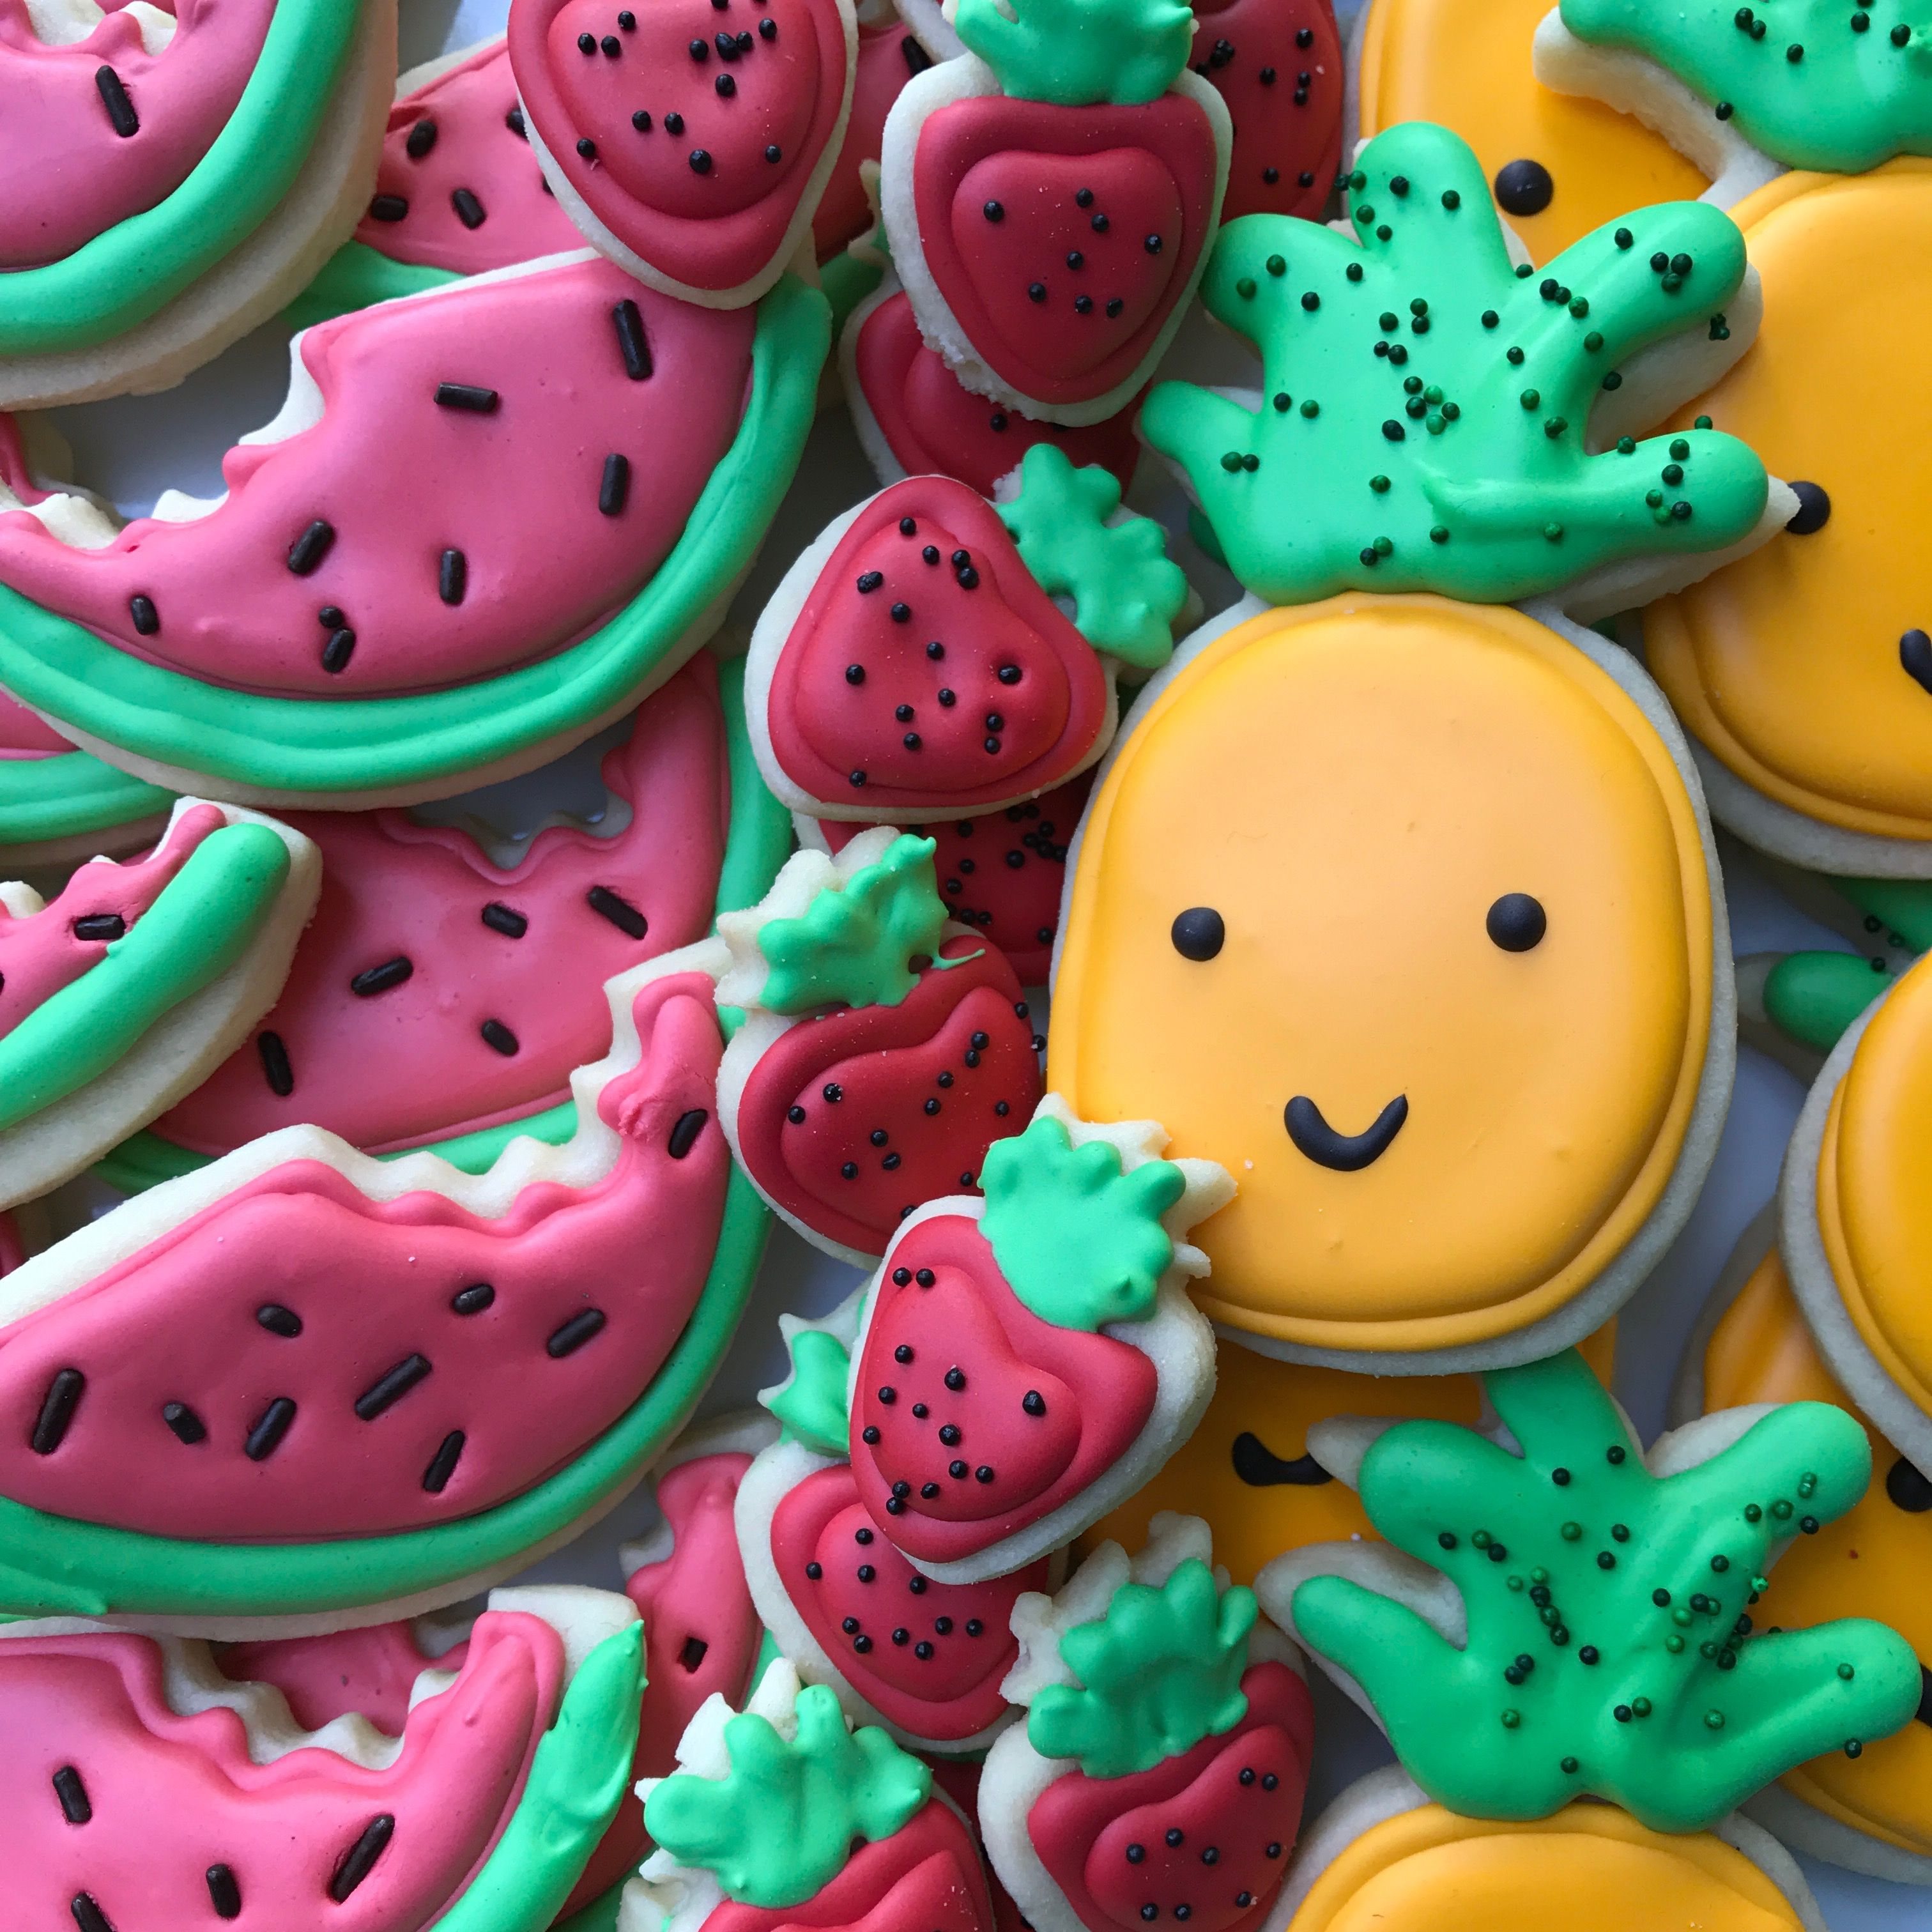 Fruit sugar cookies - pineapple, watermelon, strawberry - royal icing